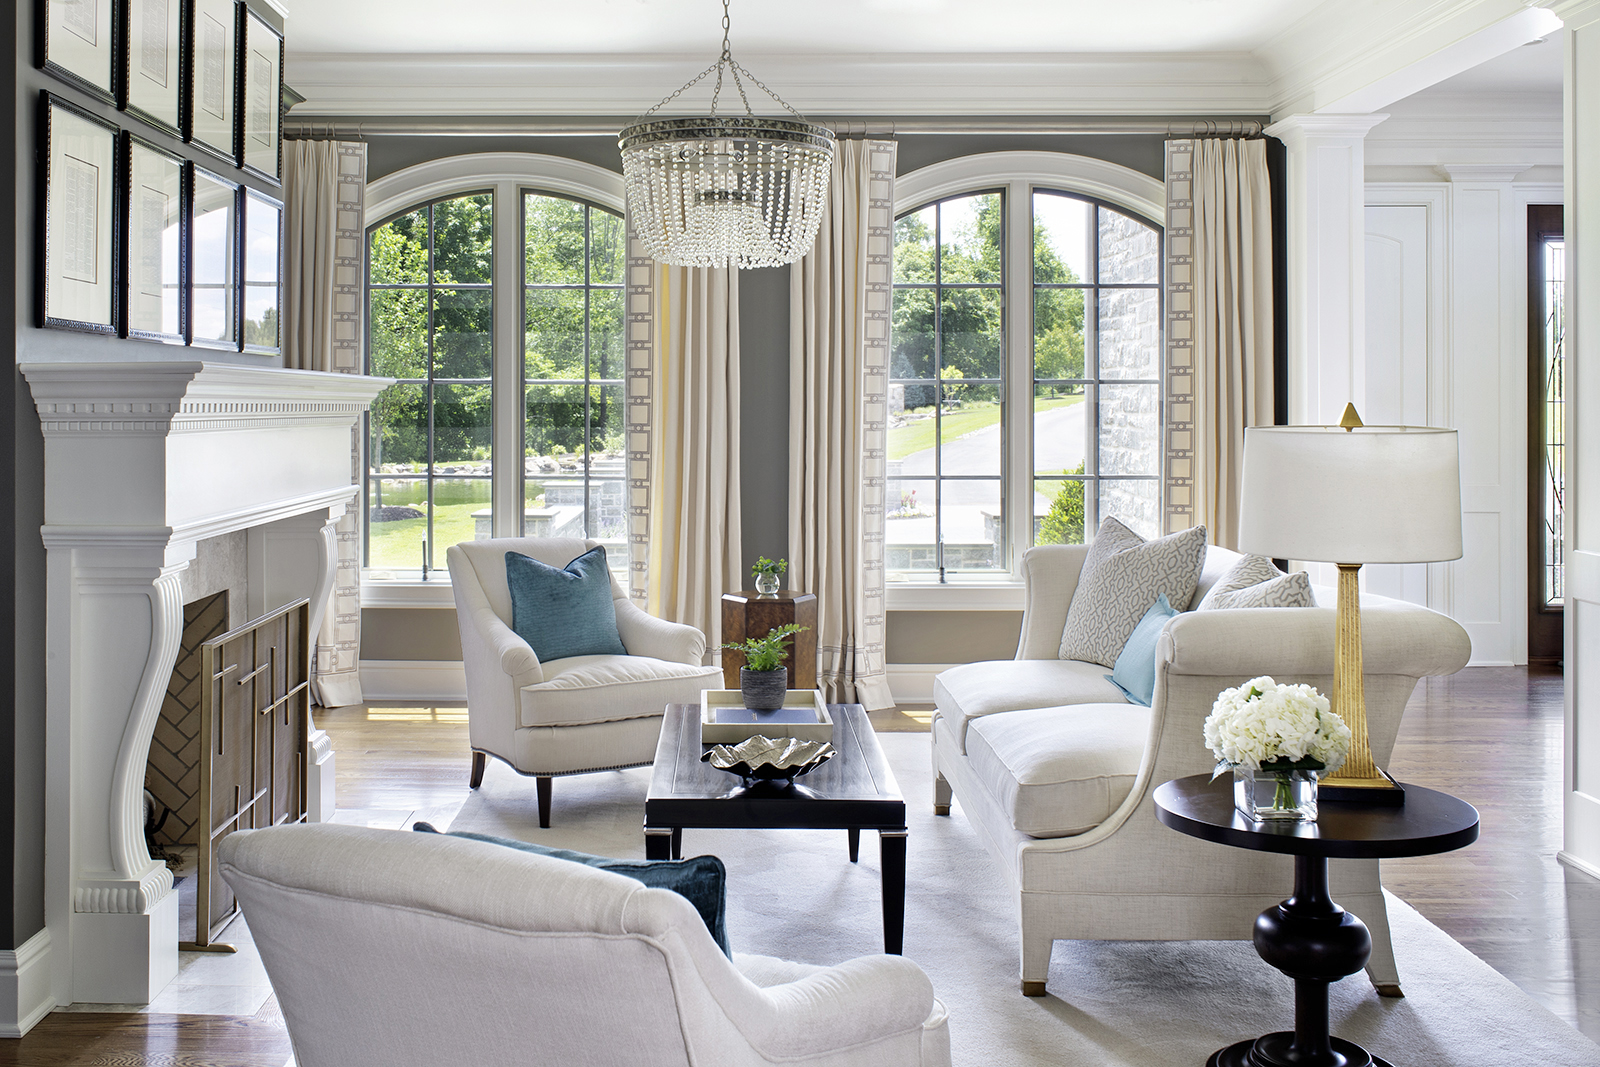 Interiors by Donna Hoffman | Custom Interior Design Consultant